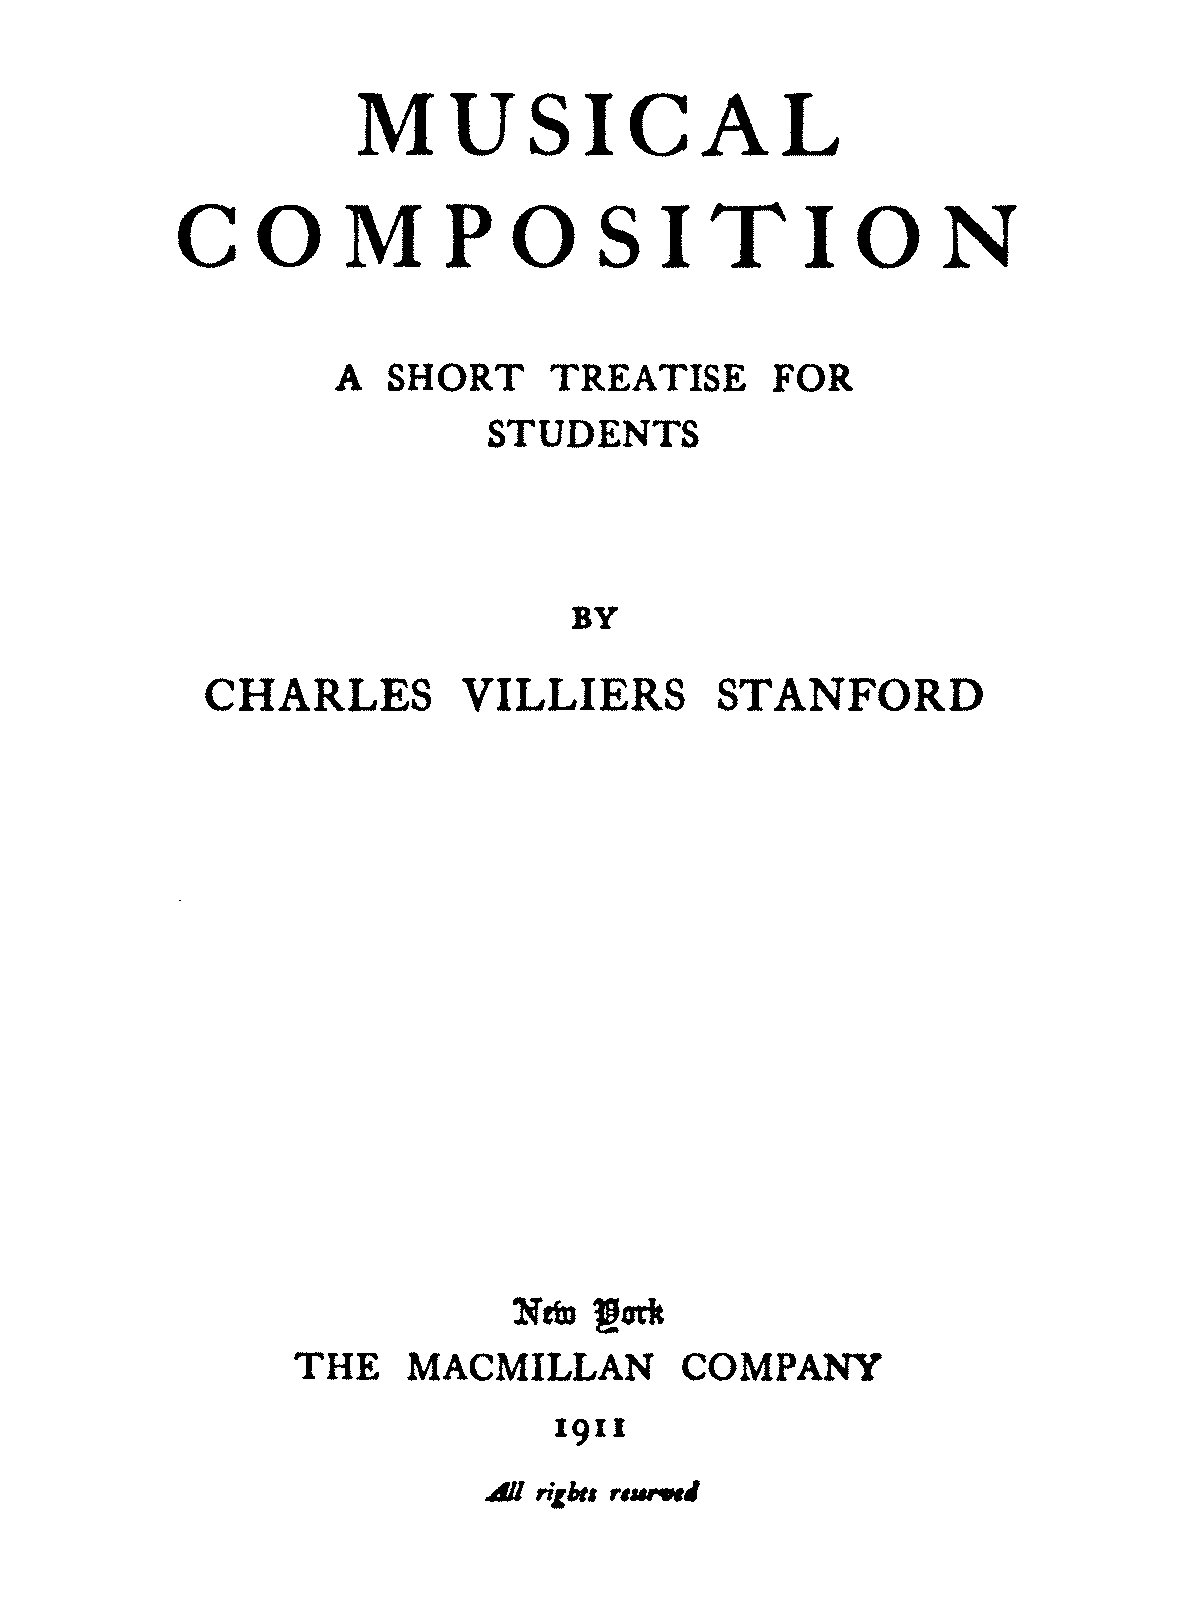 PMLP297441-CVStanford Musical Composition-ocr.pdf